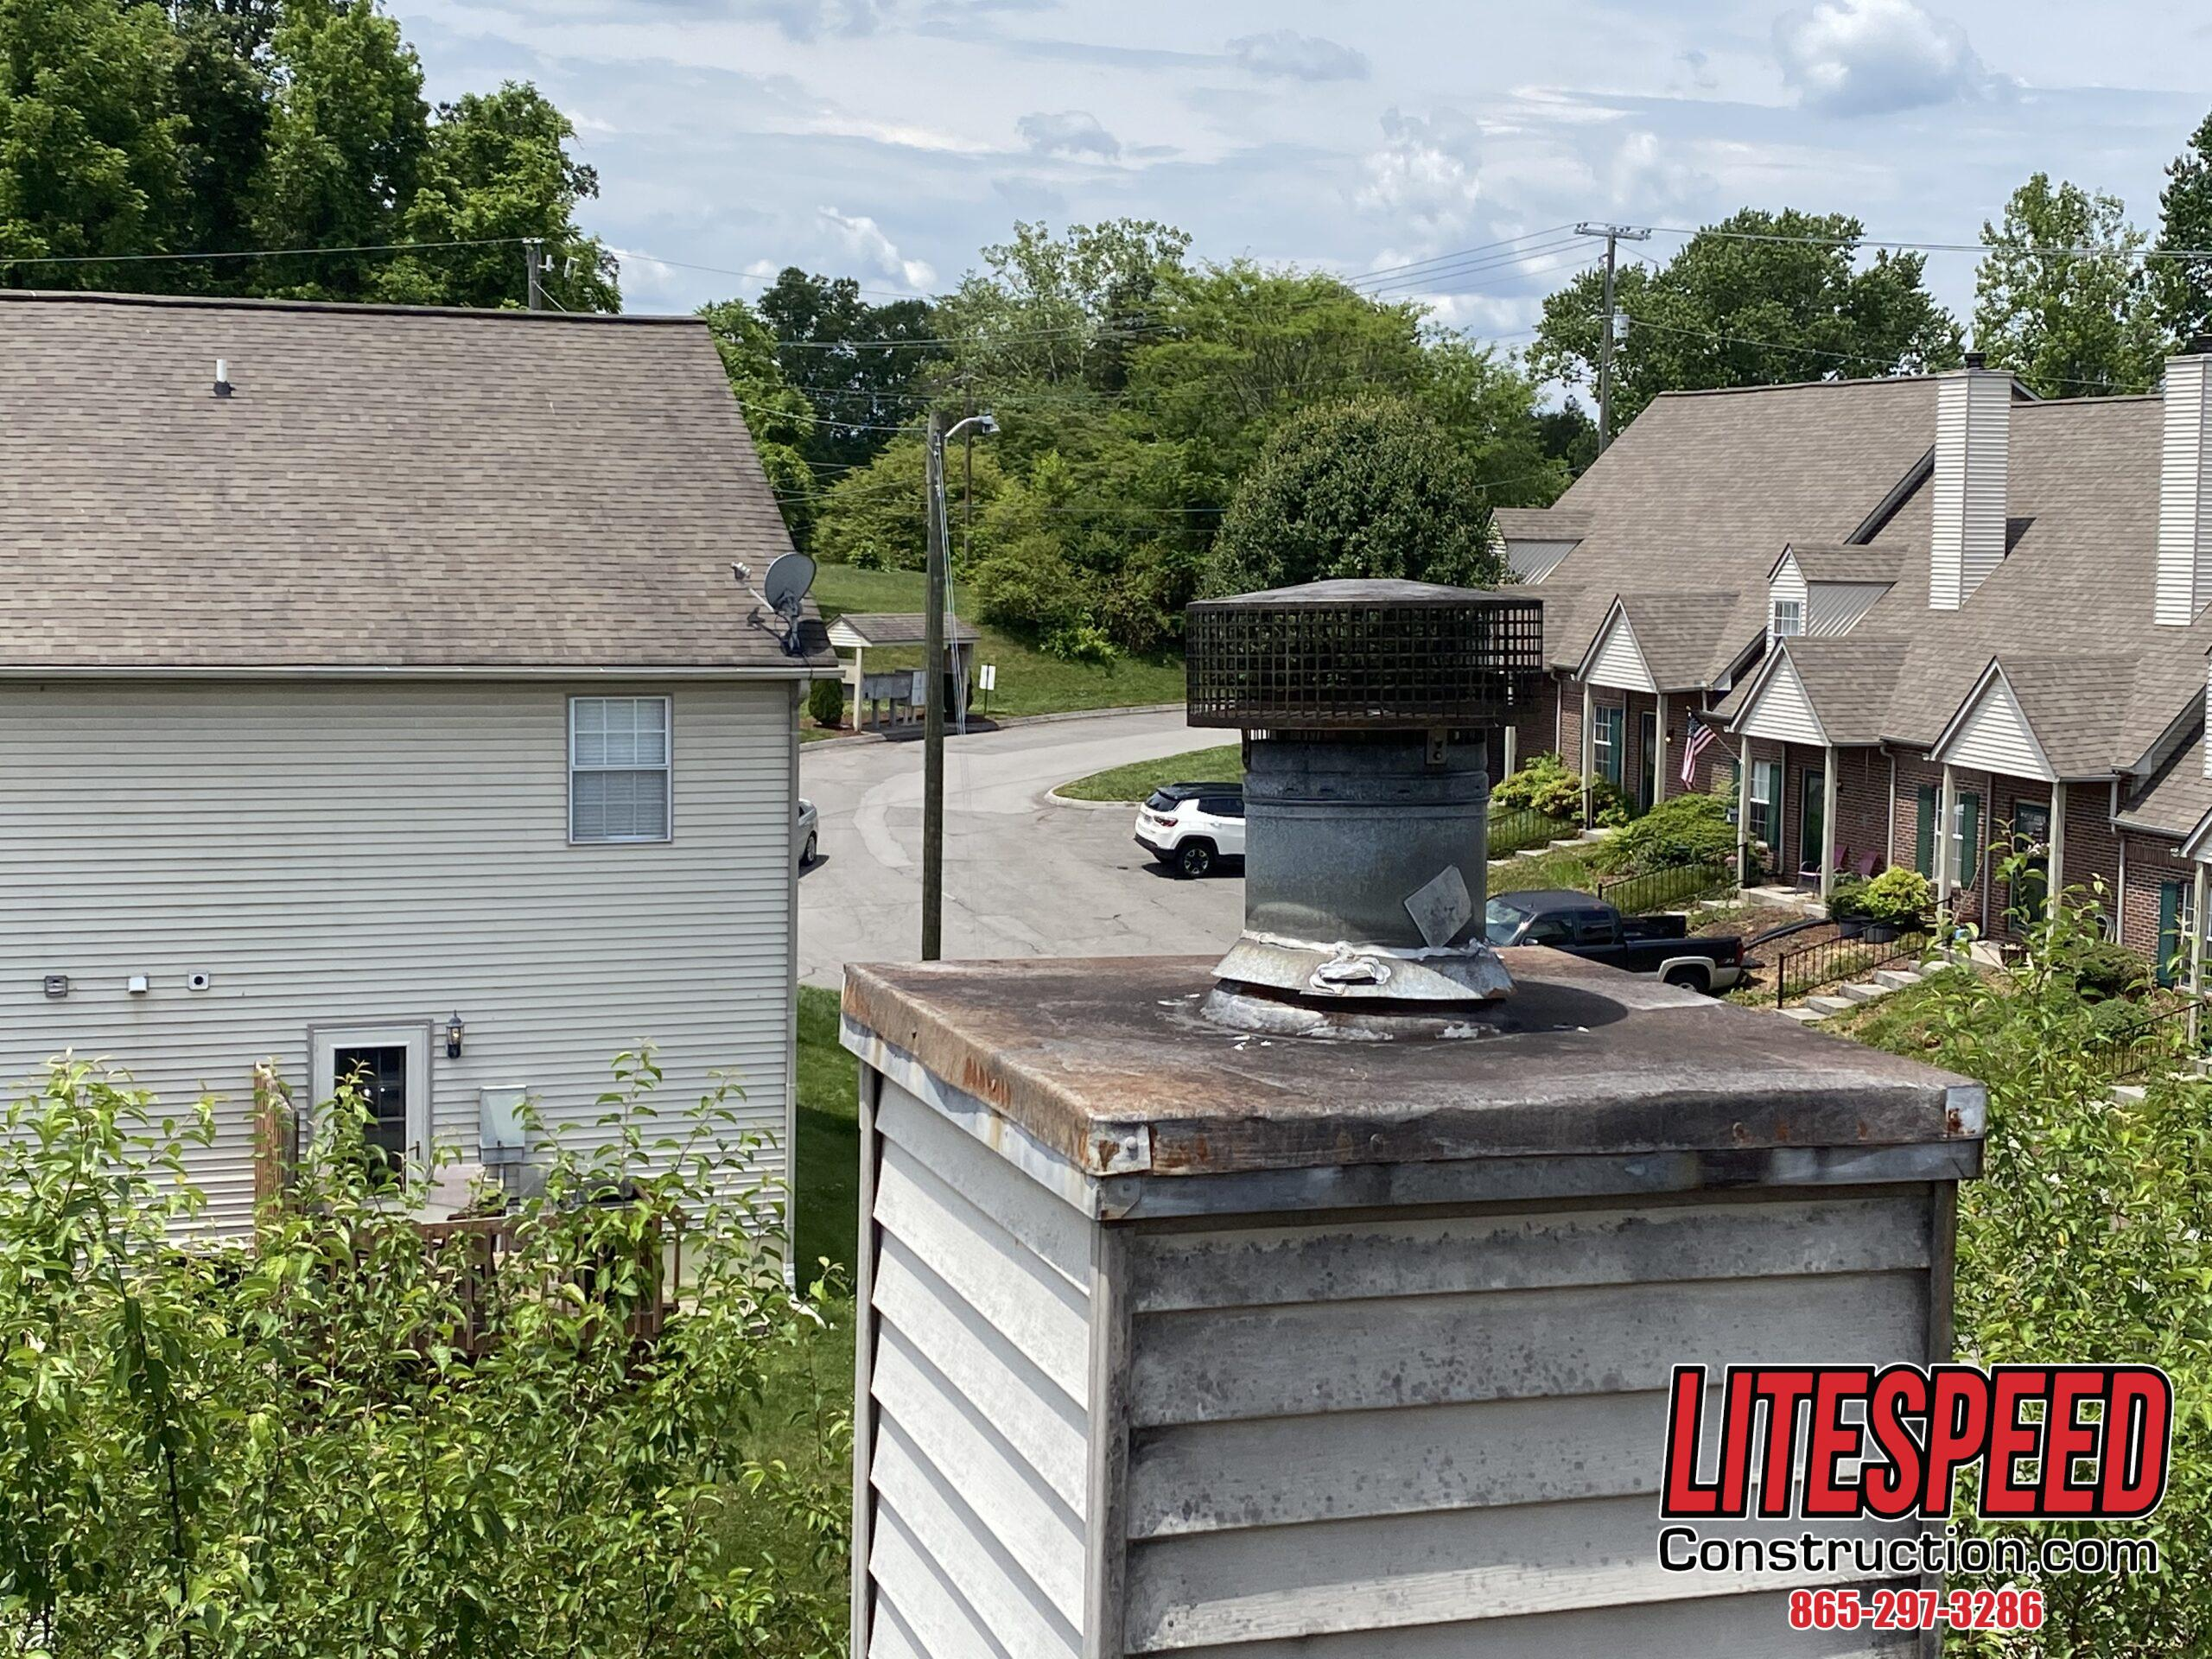 This is a picture of an old rusty chimney cap